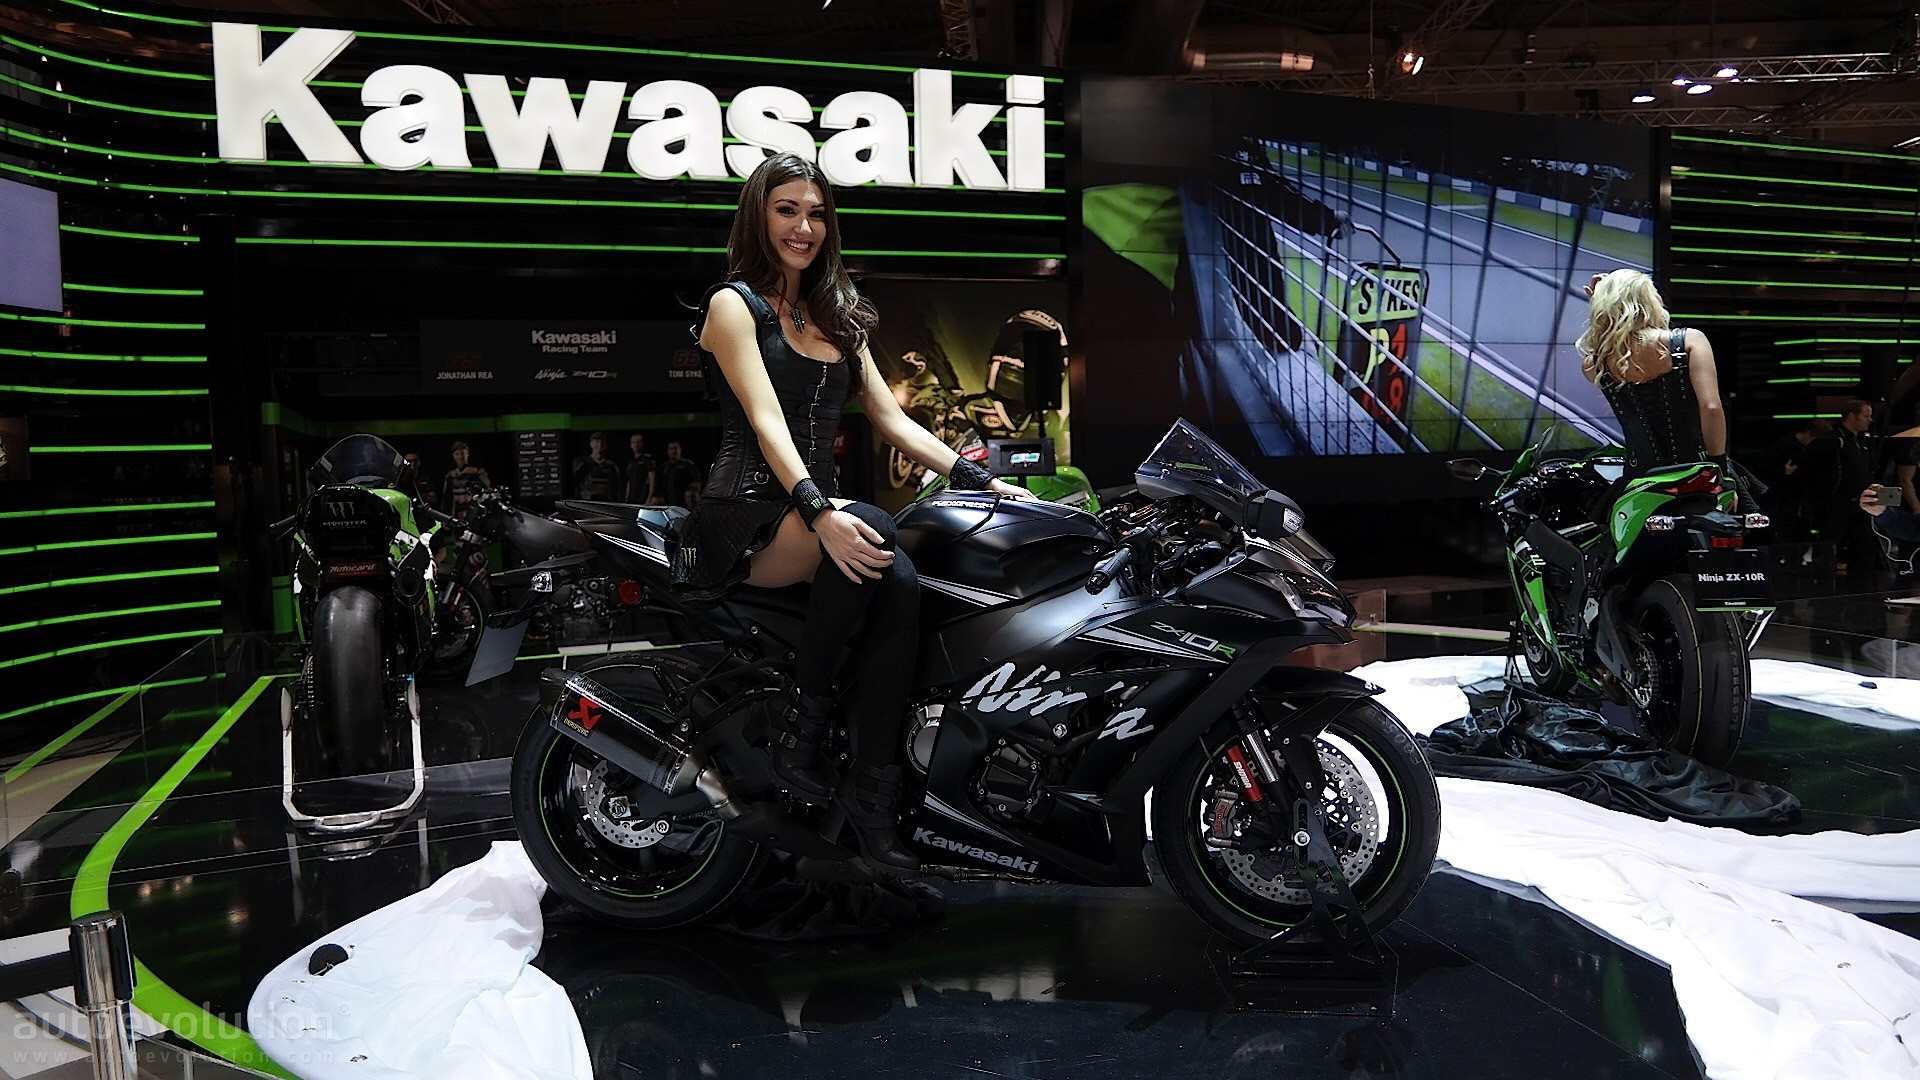 Eicma 2016 Kawasaki Ninja Zx 10r And Krt Replica Pack 210